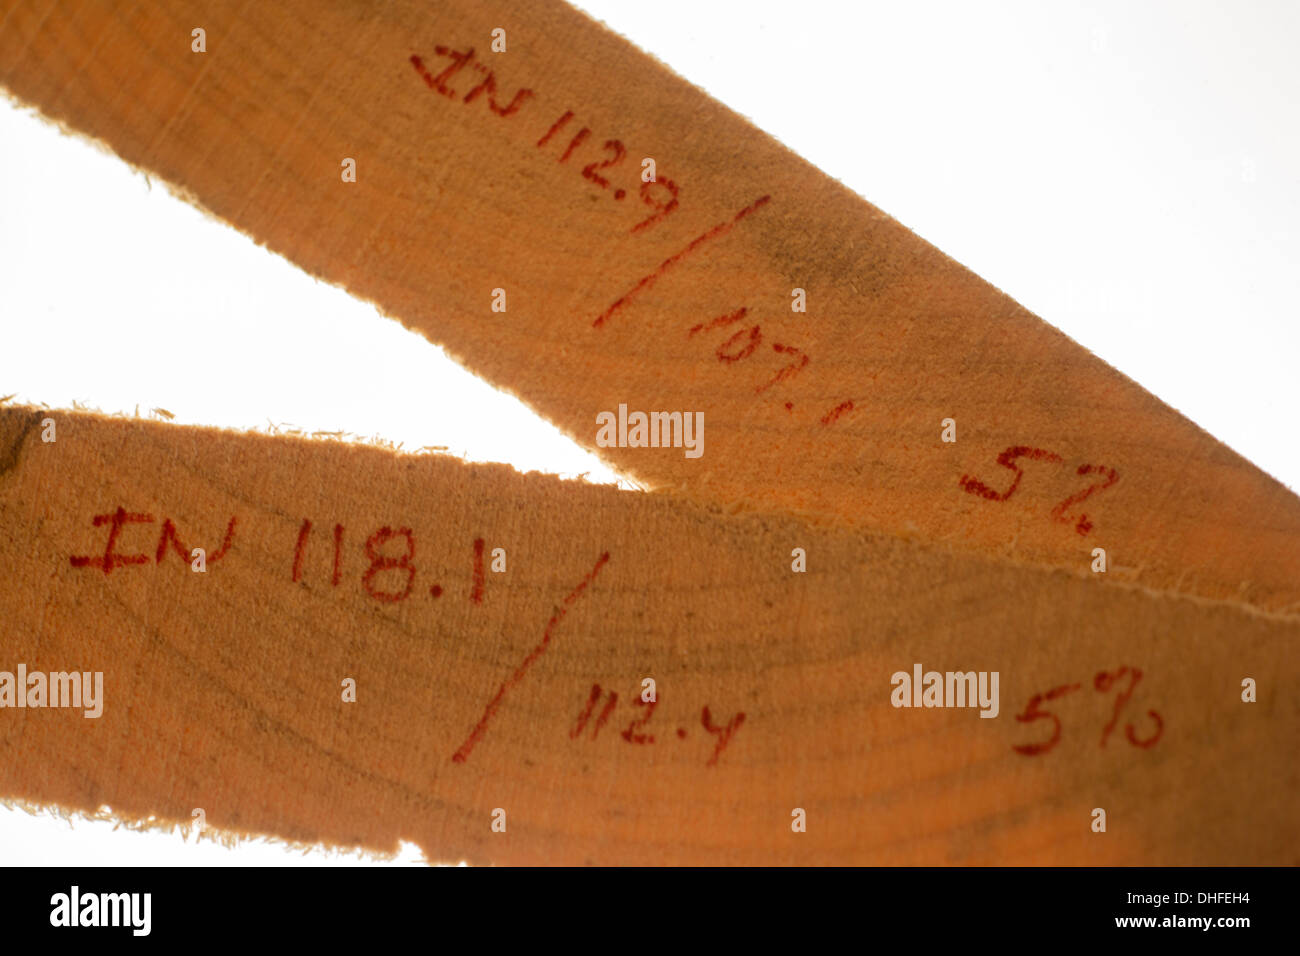 LUMBER HUMIDITY MOISTURE REDUCTION CALCULATIONS OF KILN TIMBER SLICES - Stock Image